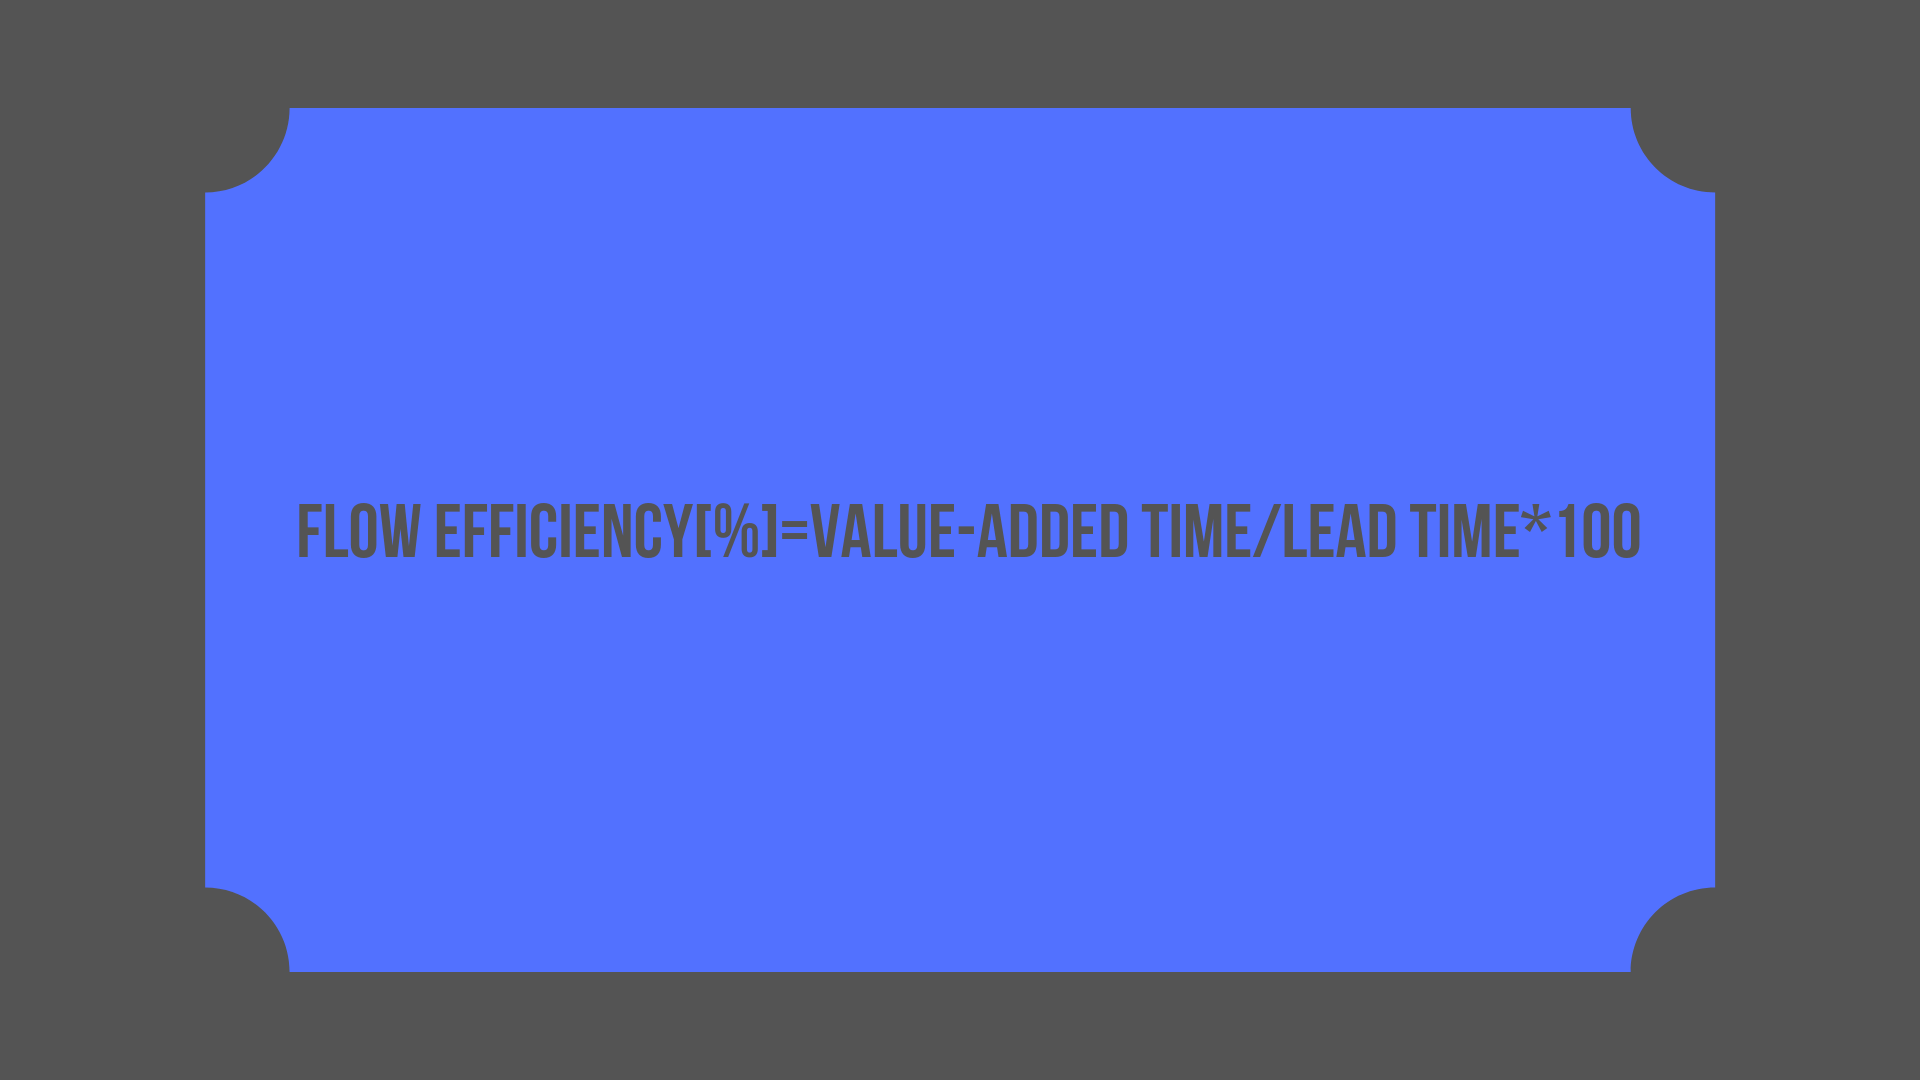 Flow Efficiency[%]=Value-added Time/Lead Time*100